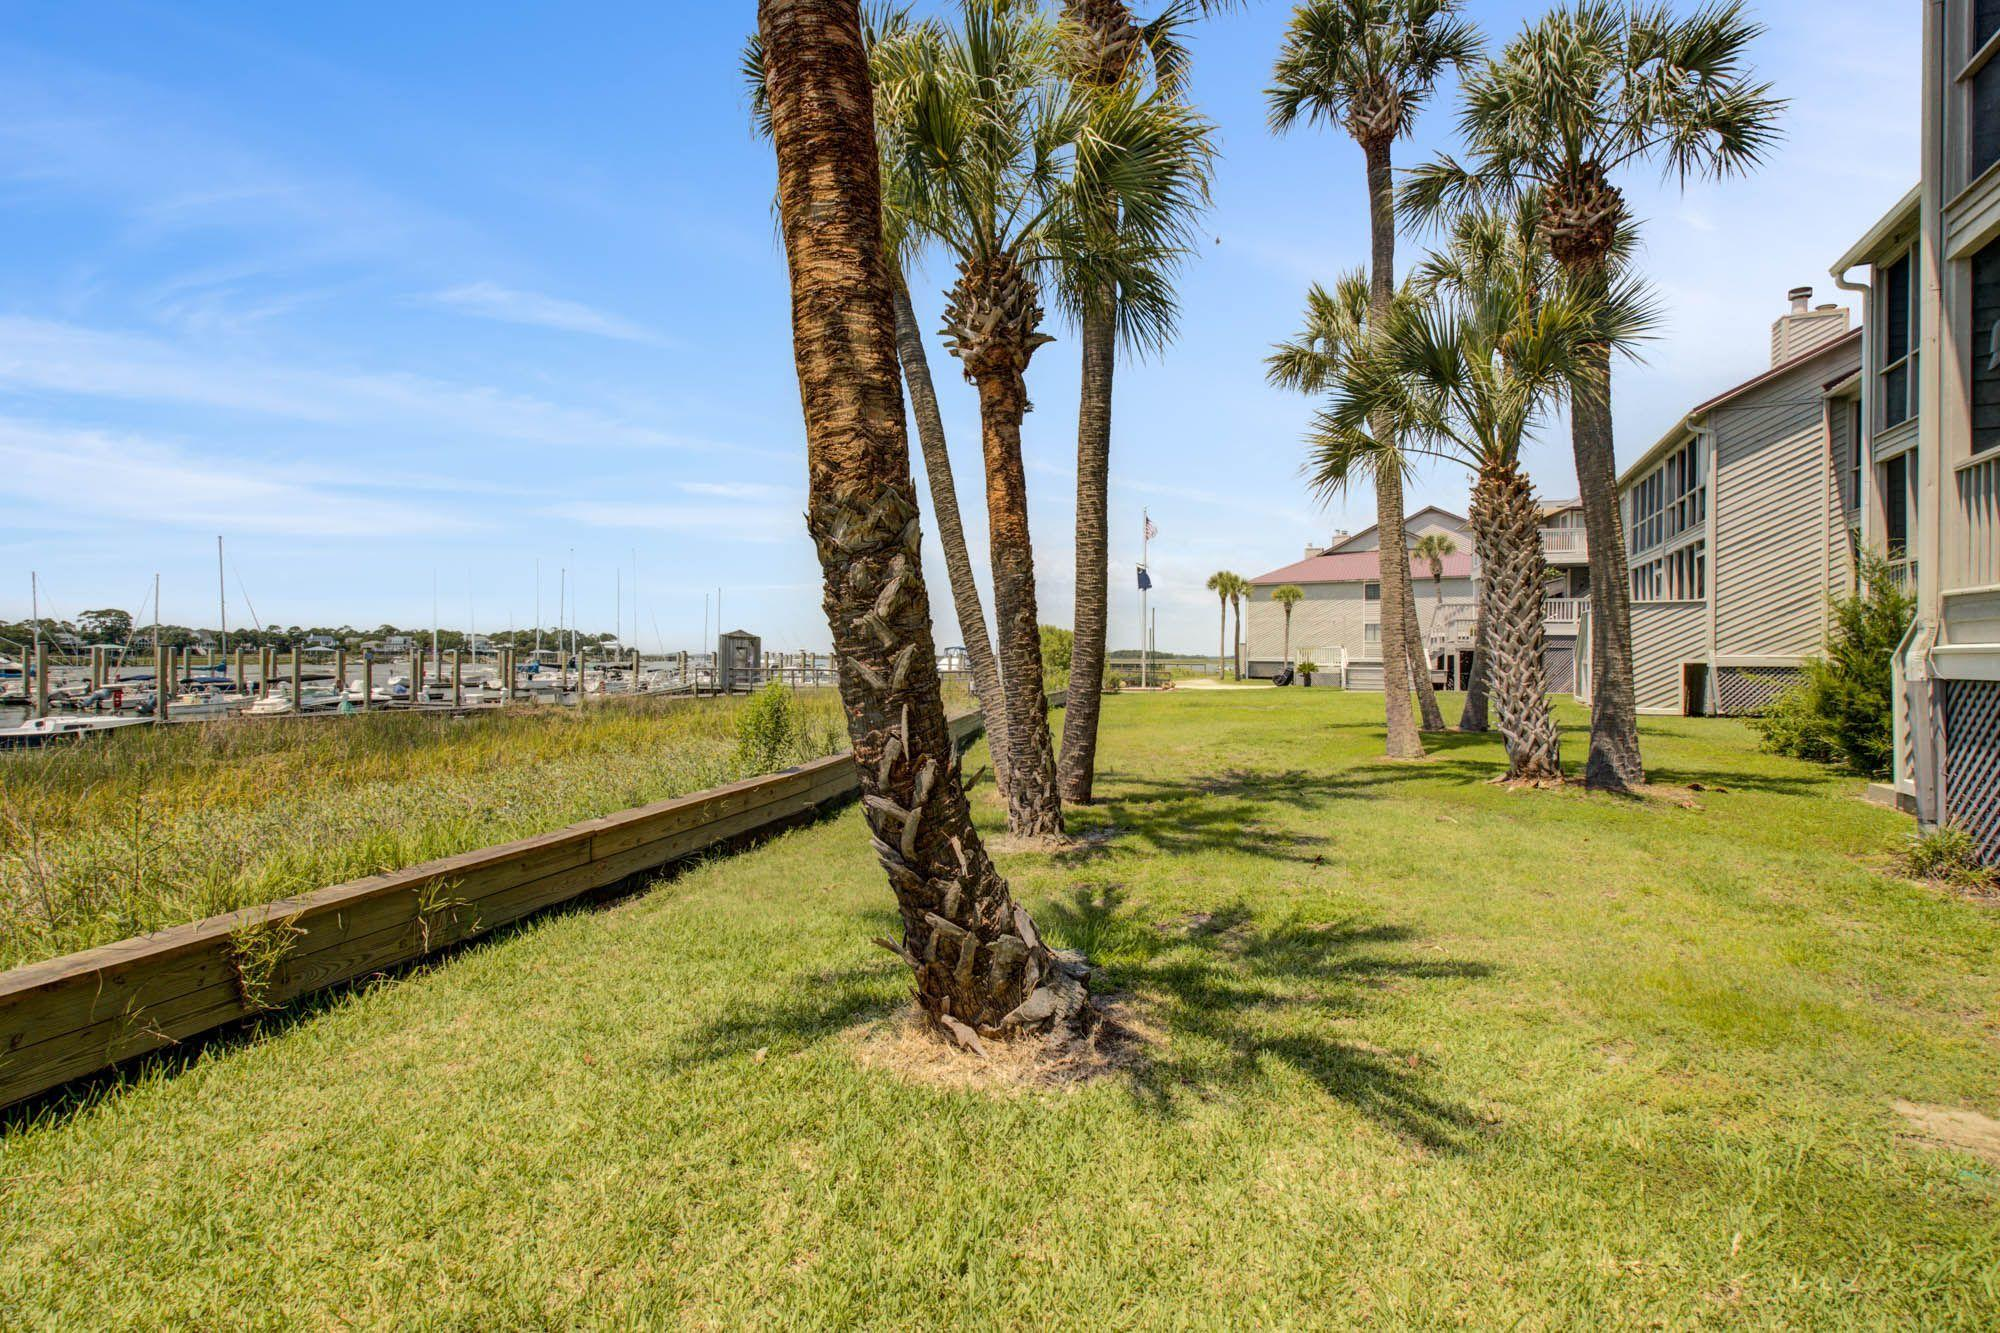 Mariners Cay Homes For Sale - 51 Mariners Cay, Folly Beach, SC - 9